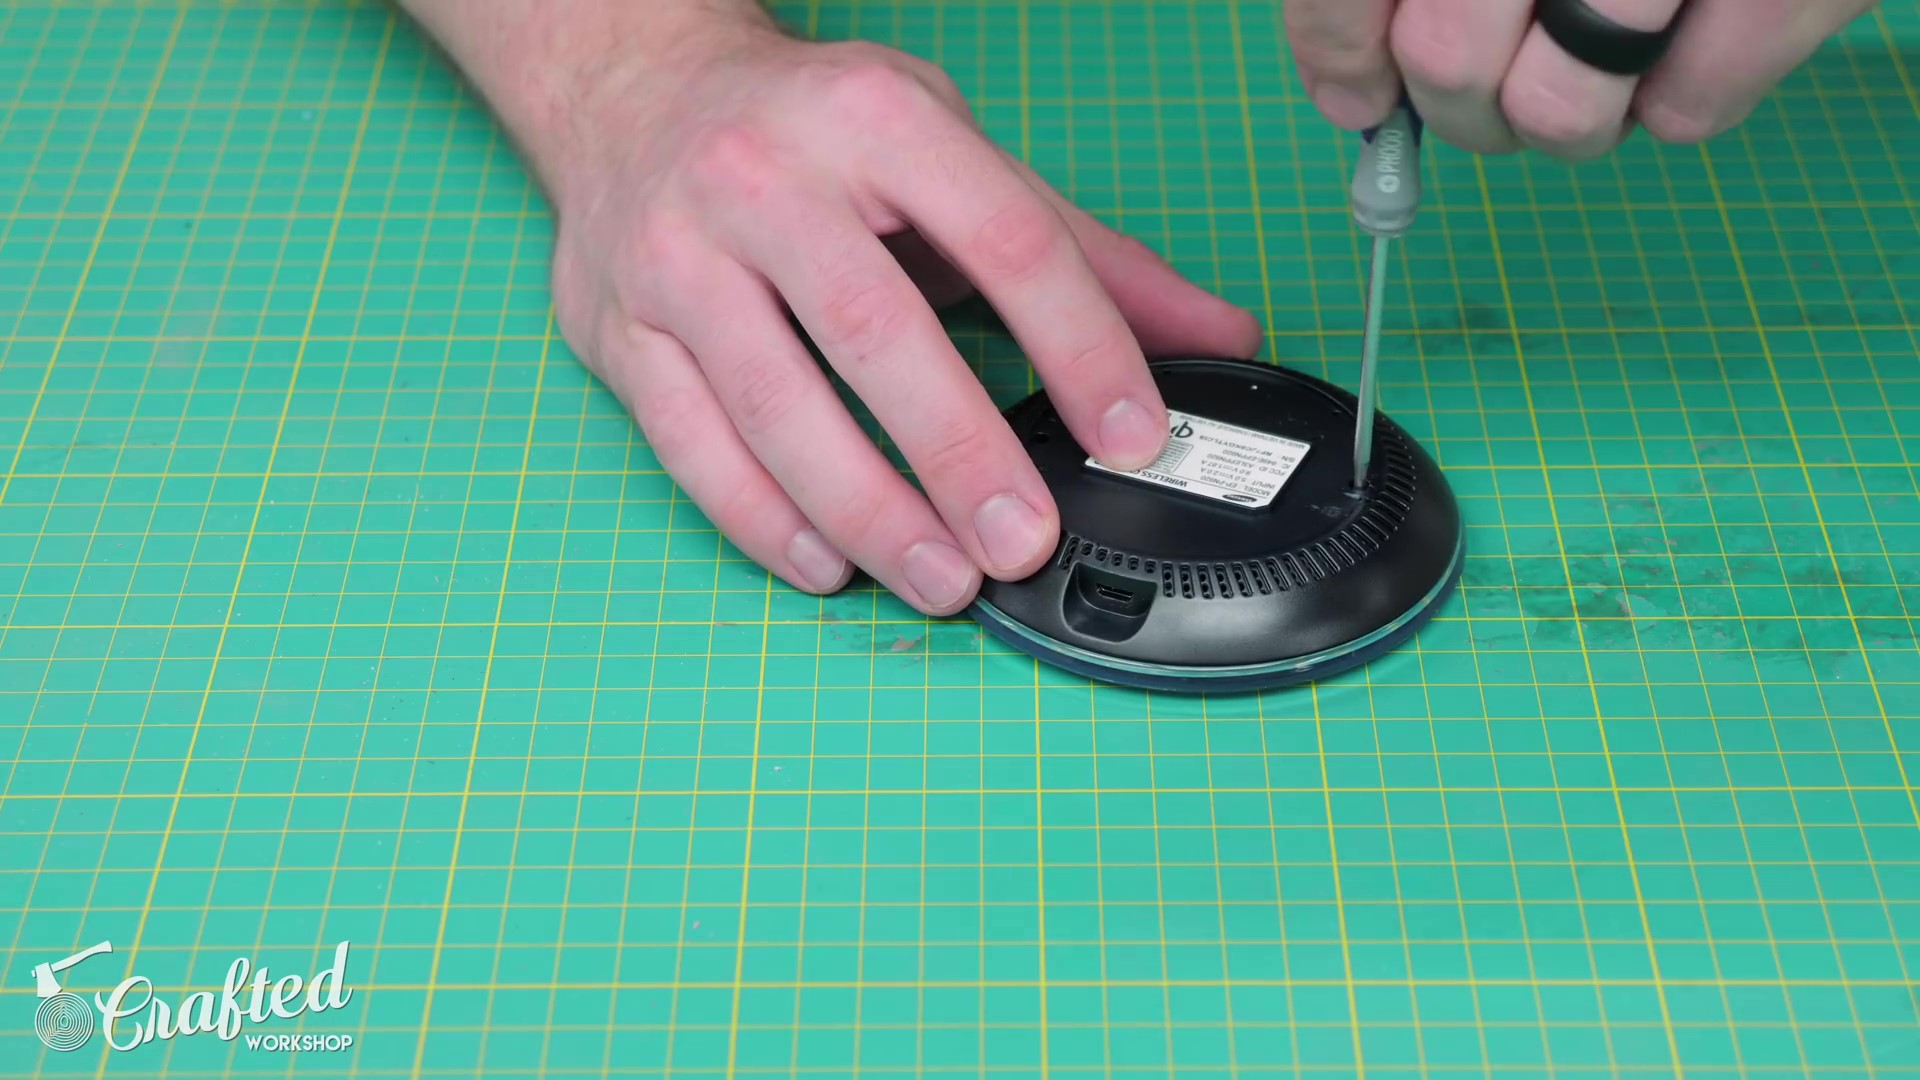 Disassembling a Wireless Charger